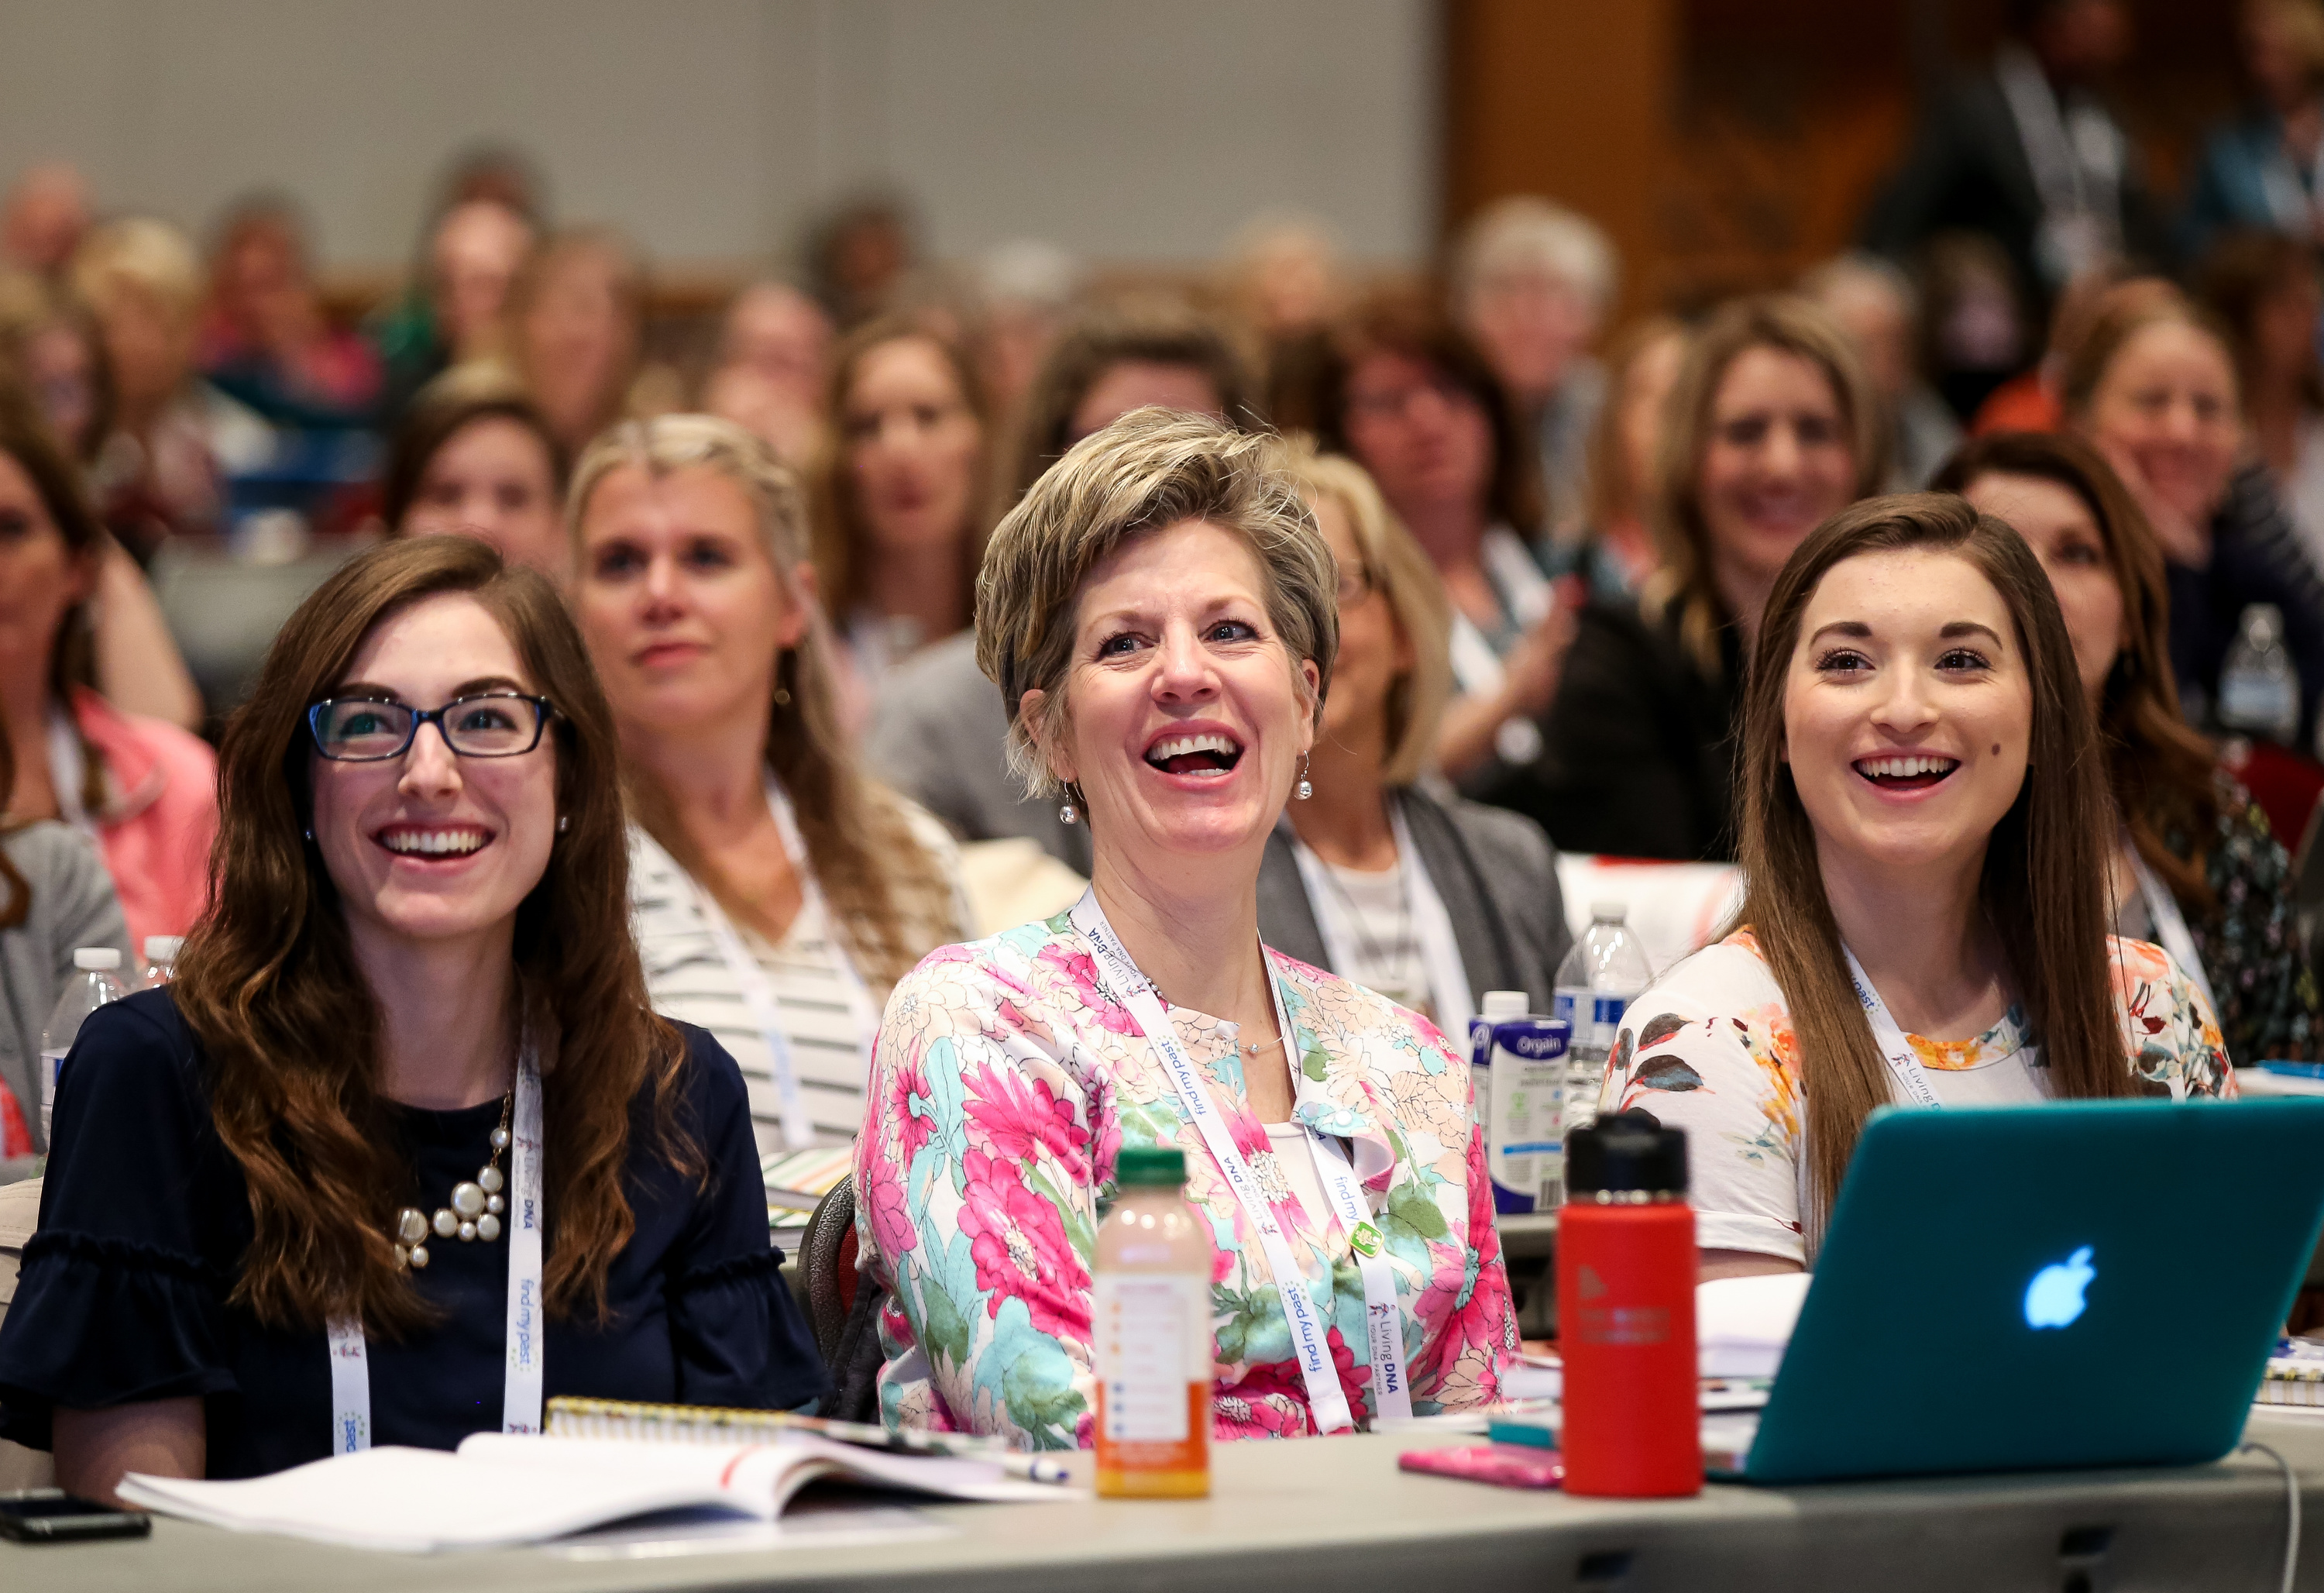 Julie Ilene Koch and her daughters, Mckinsey Koch, left, and Rebecca Koch, right, listen to a speaker during the Light Keepers session at the RootsTech conference at the Salt Palace in Salt Lake City on Friday, March 1, 2019.